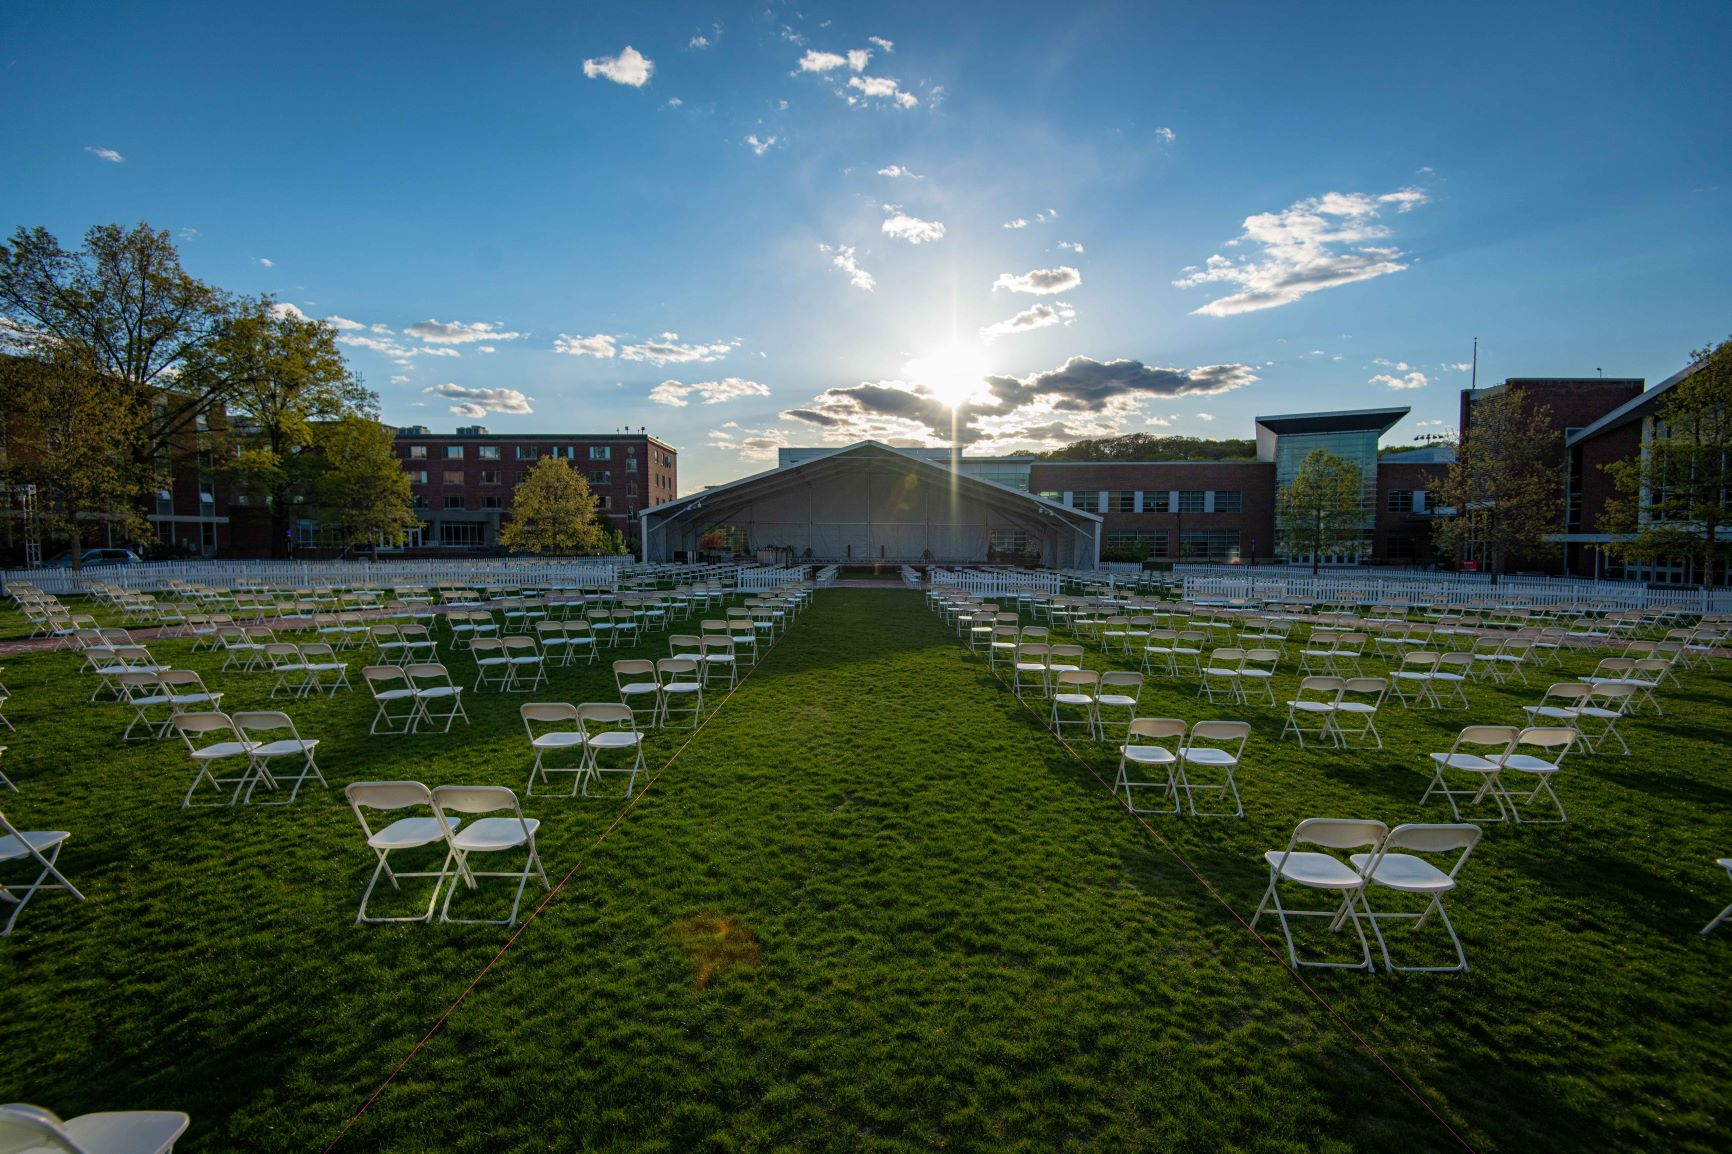 Tent and chairs on the Quad